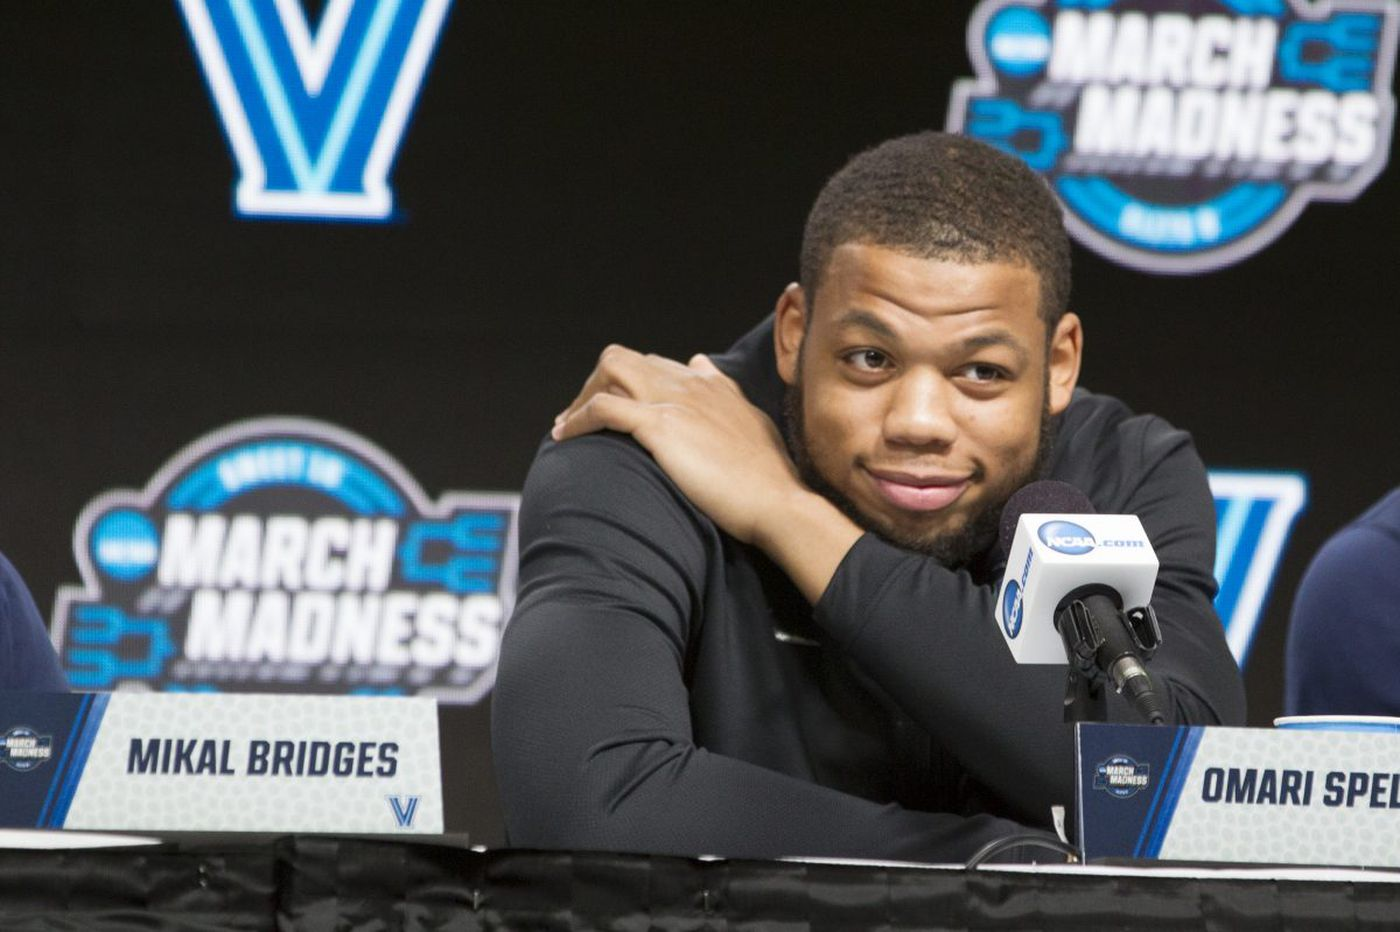 Villanova's Omari Spellman combines basketball and poetry as his outlets